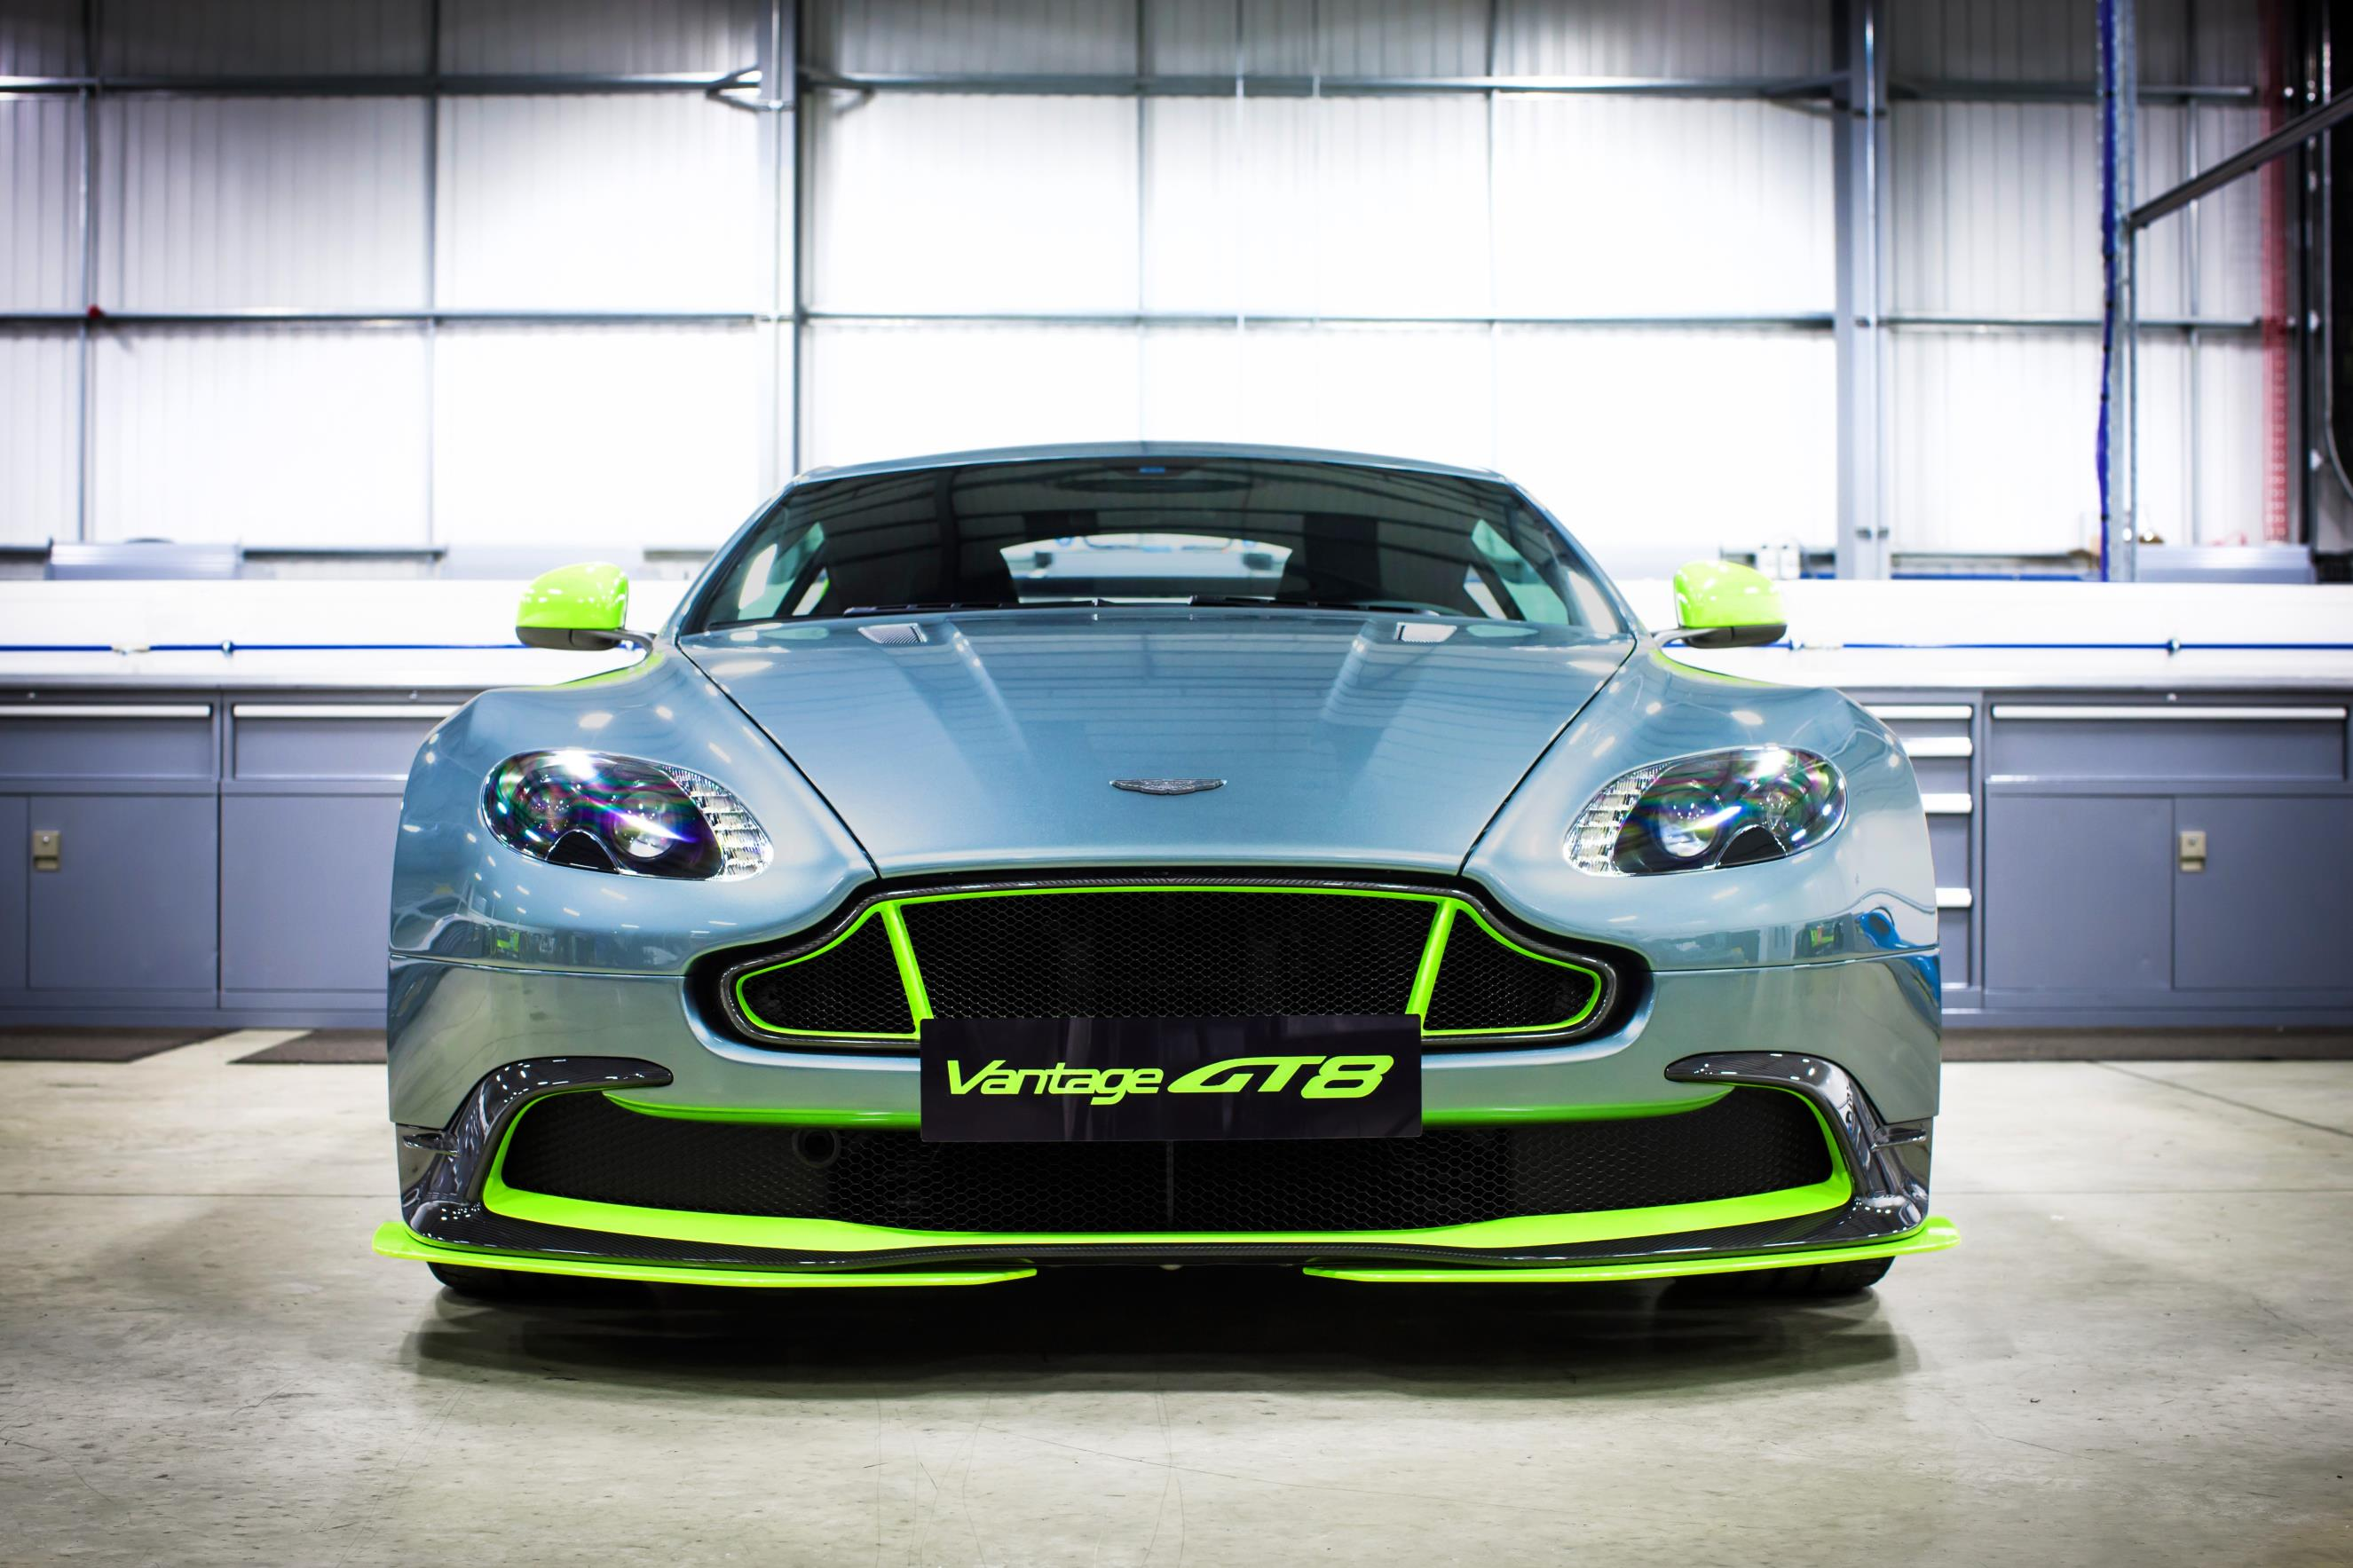 aston-martin-vantage-gt8-turns-the-v8-vantage-up-a-notch_4